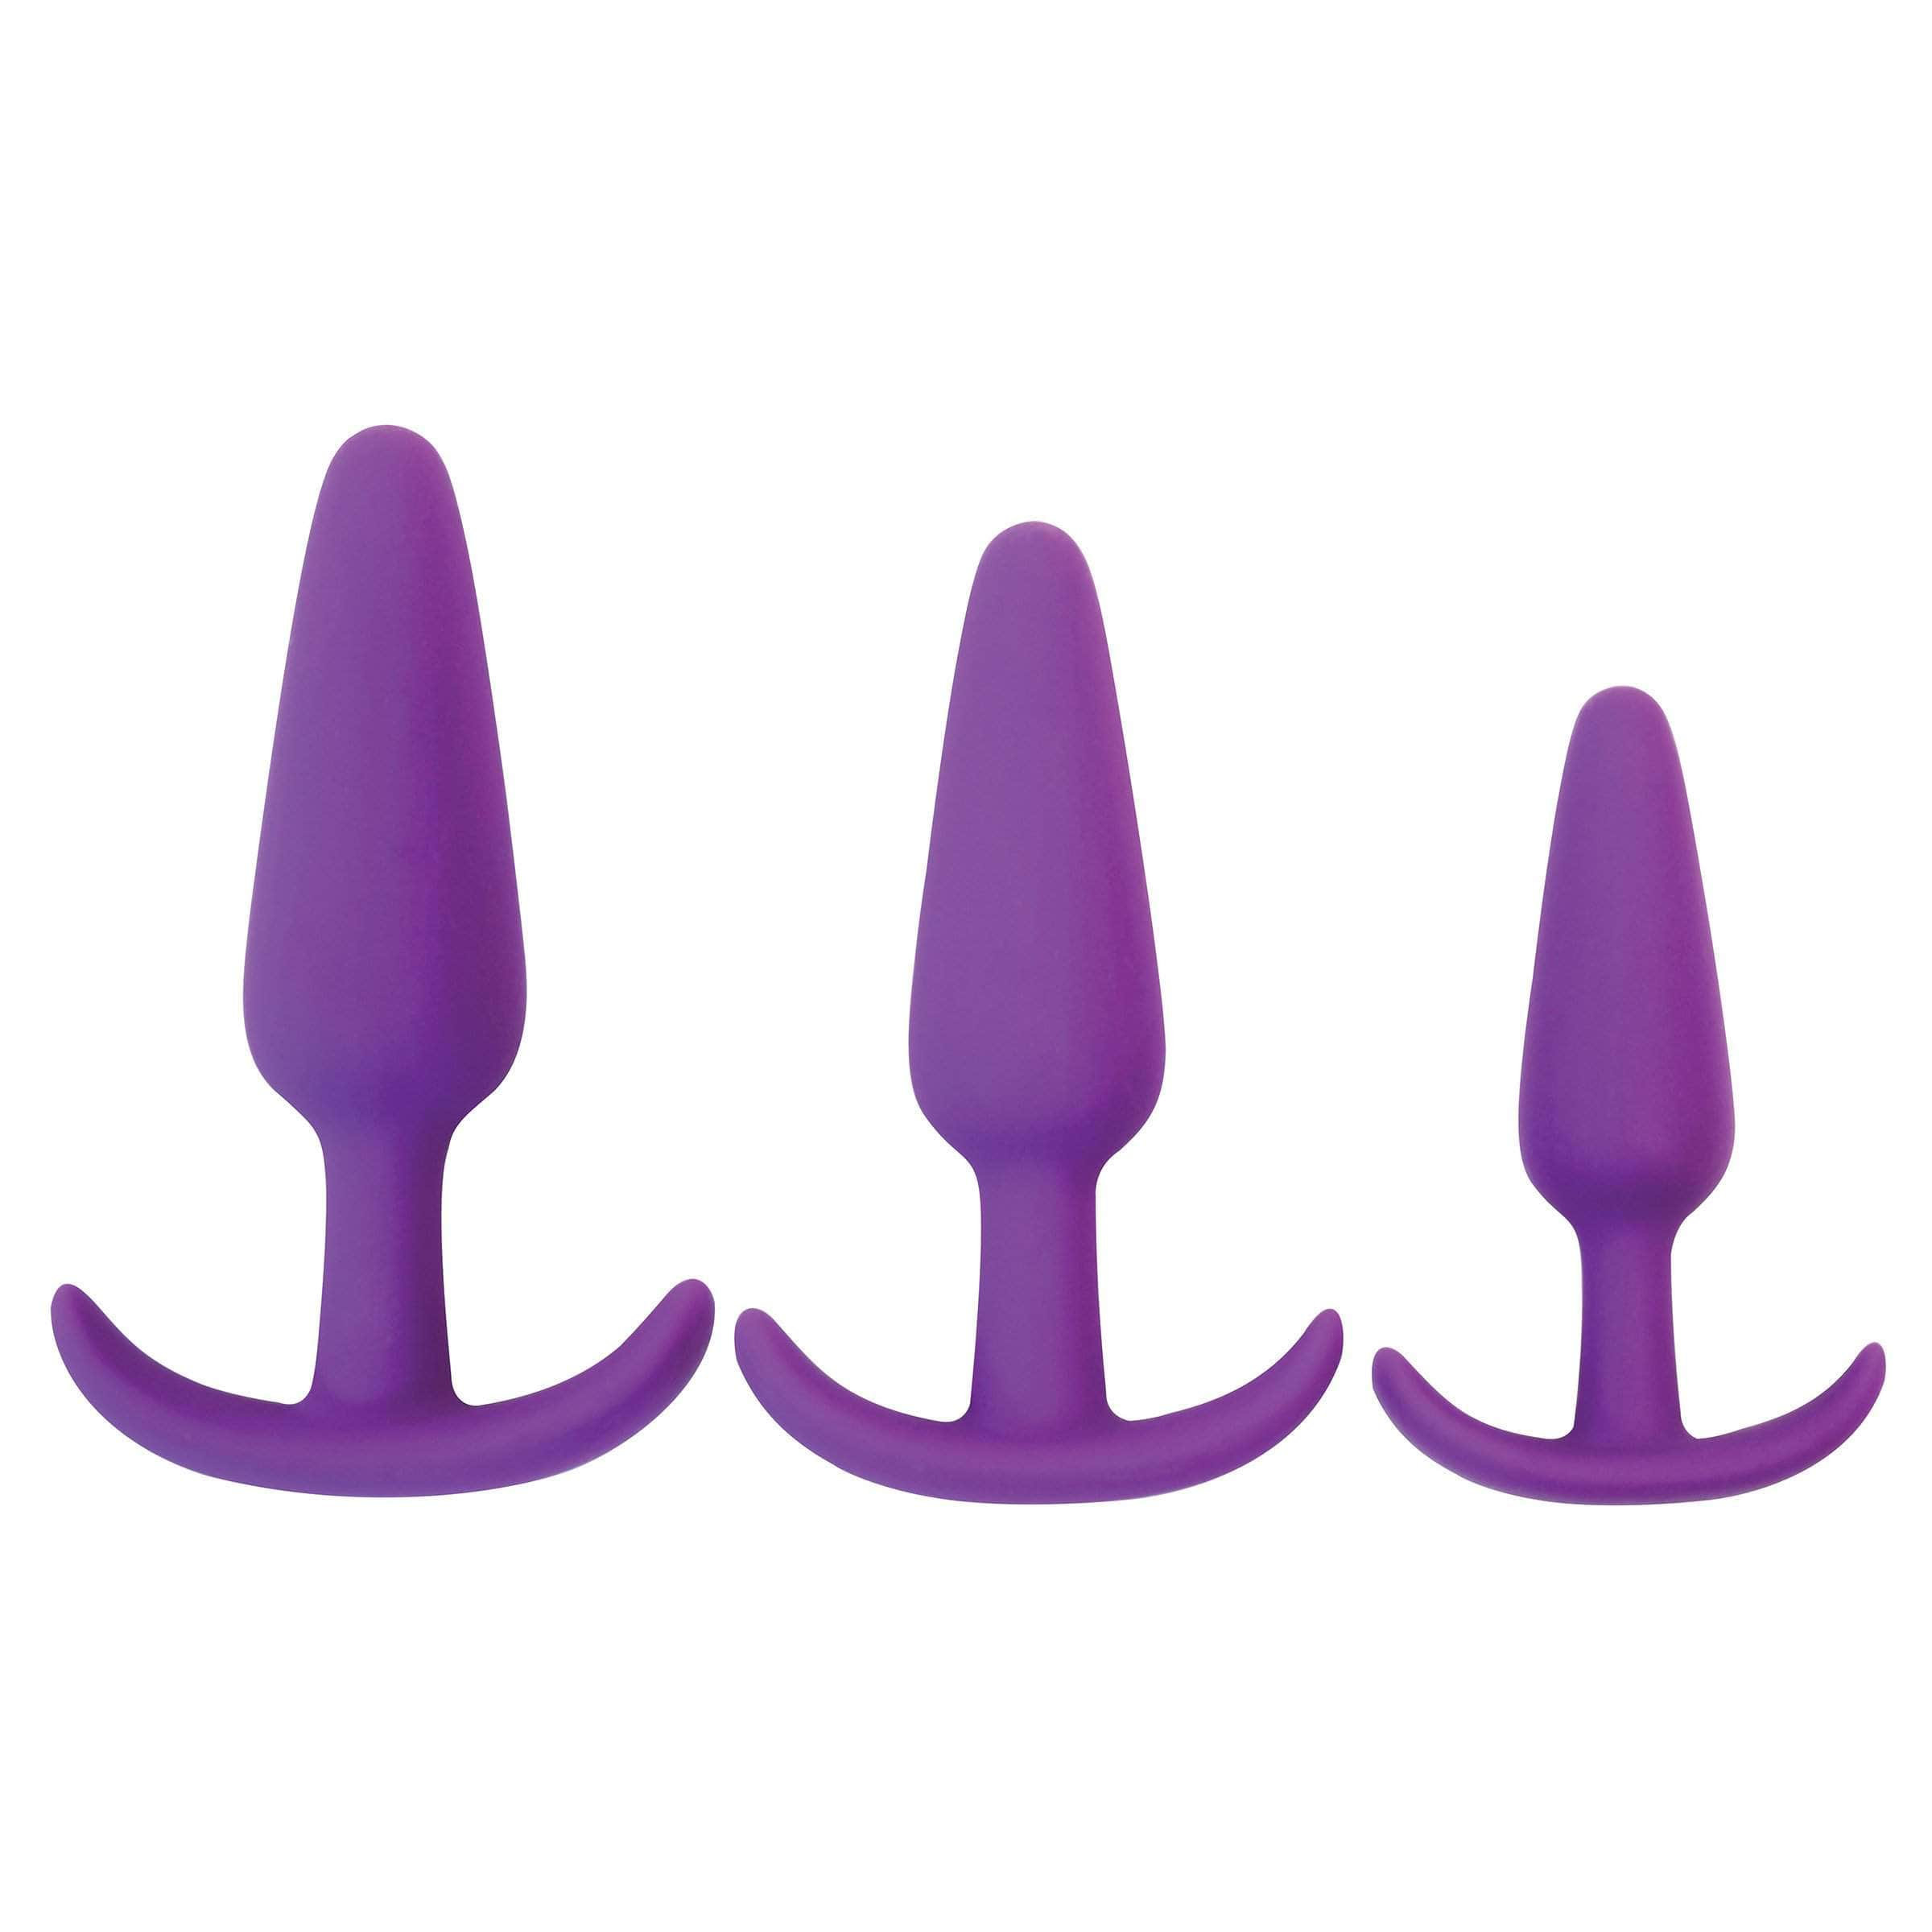 Rump Rockers 3 Piece Silicone Anal Plug Set - Purple